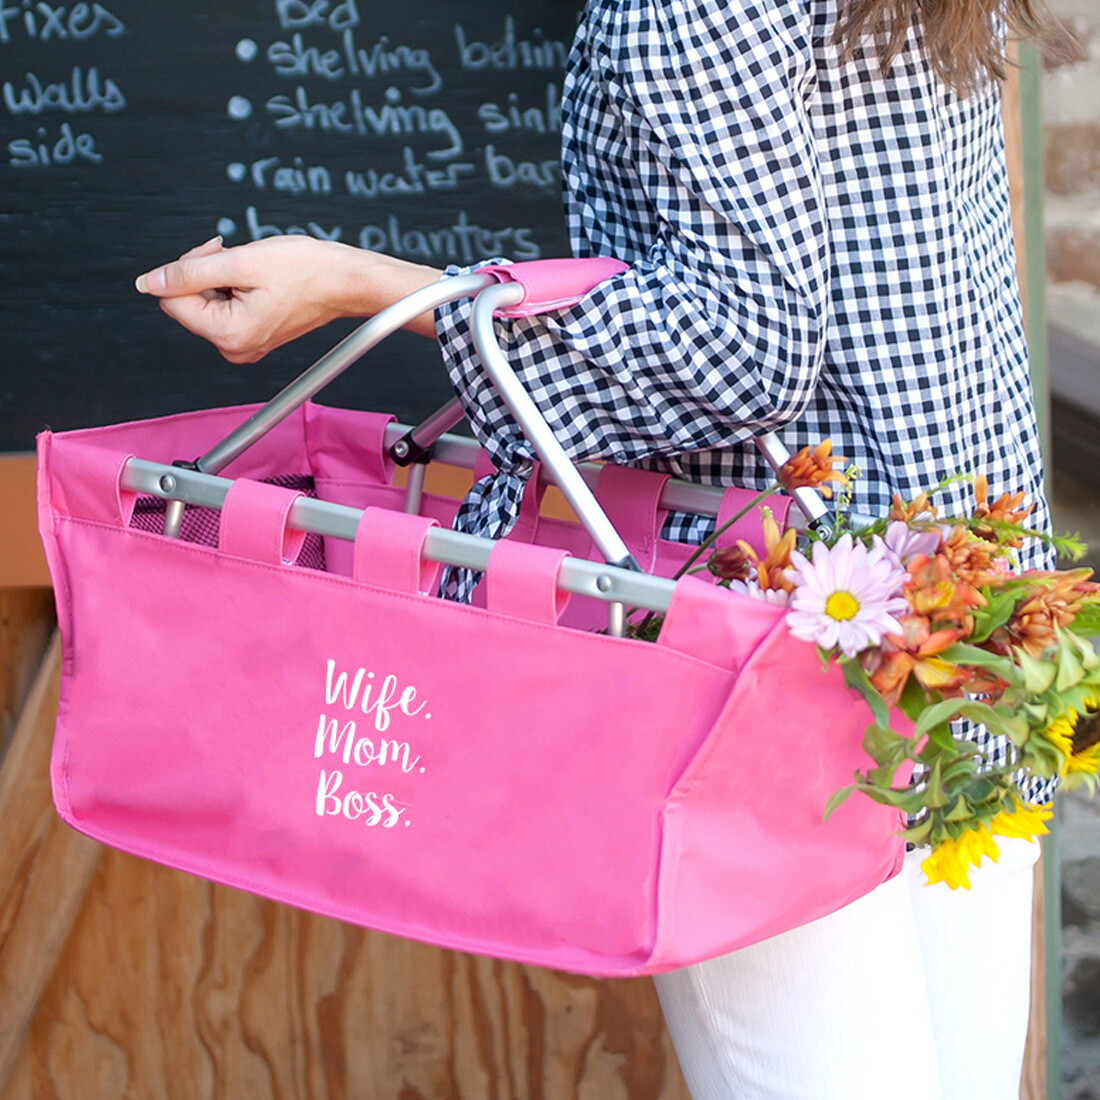 Wife.Mom.Boss Hot Pink Market Tote